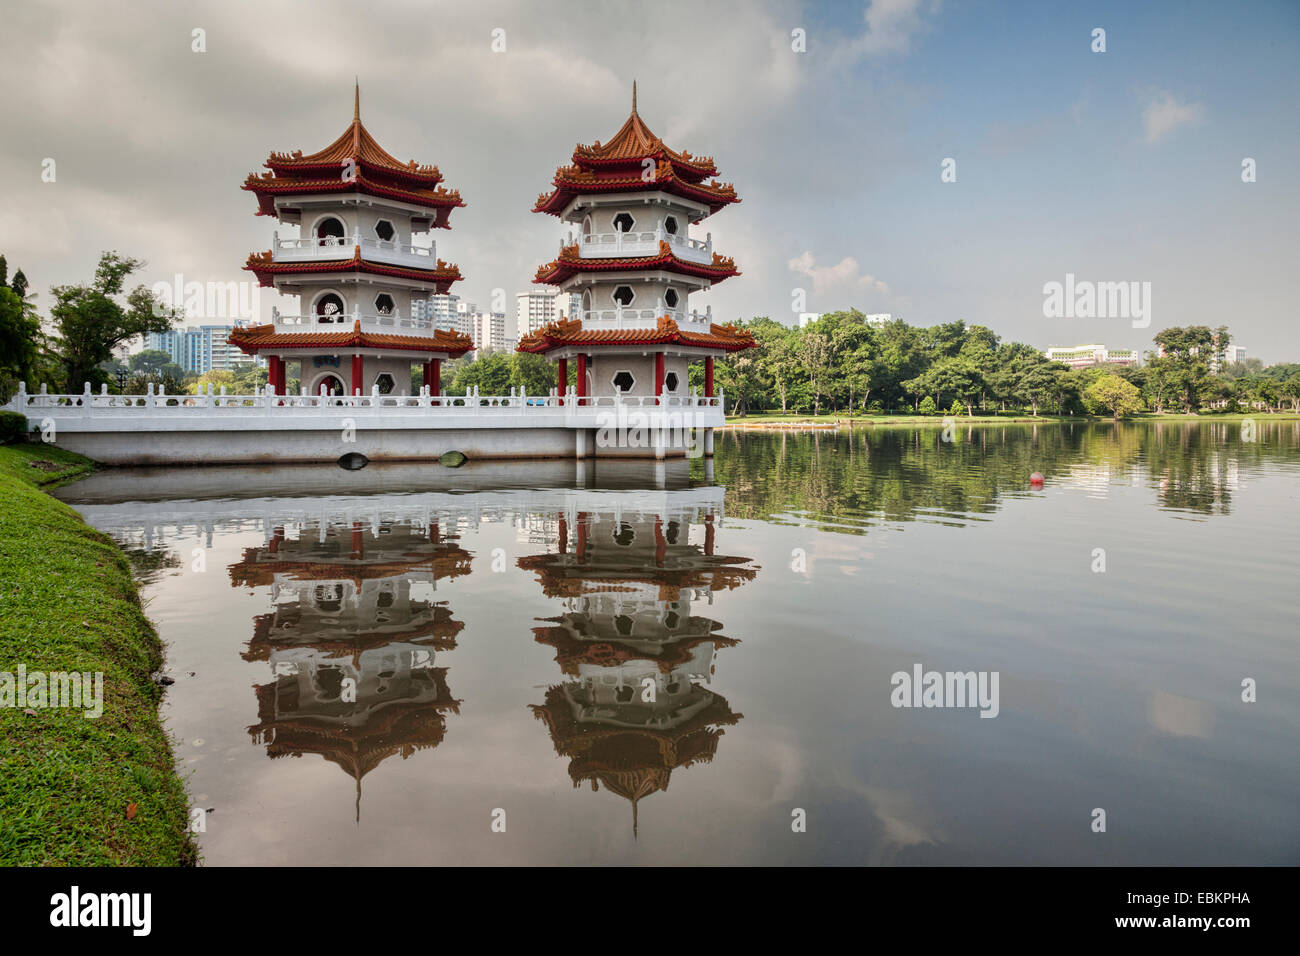 The Twin Pagodas reflected in, Chinese Garden, Singapore. - Stock Image